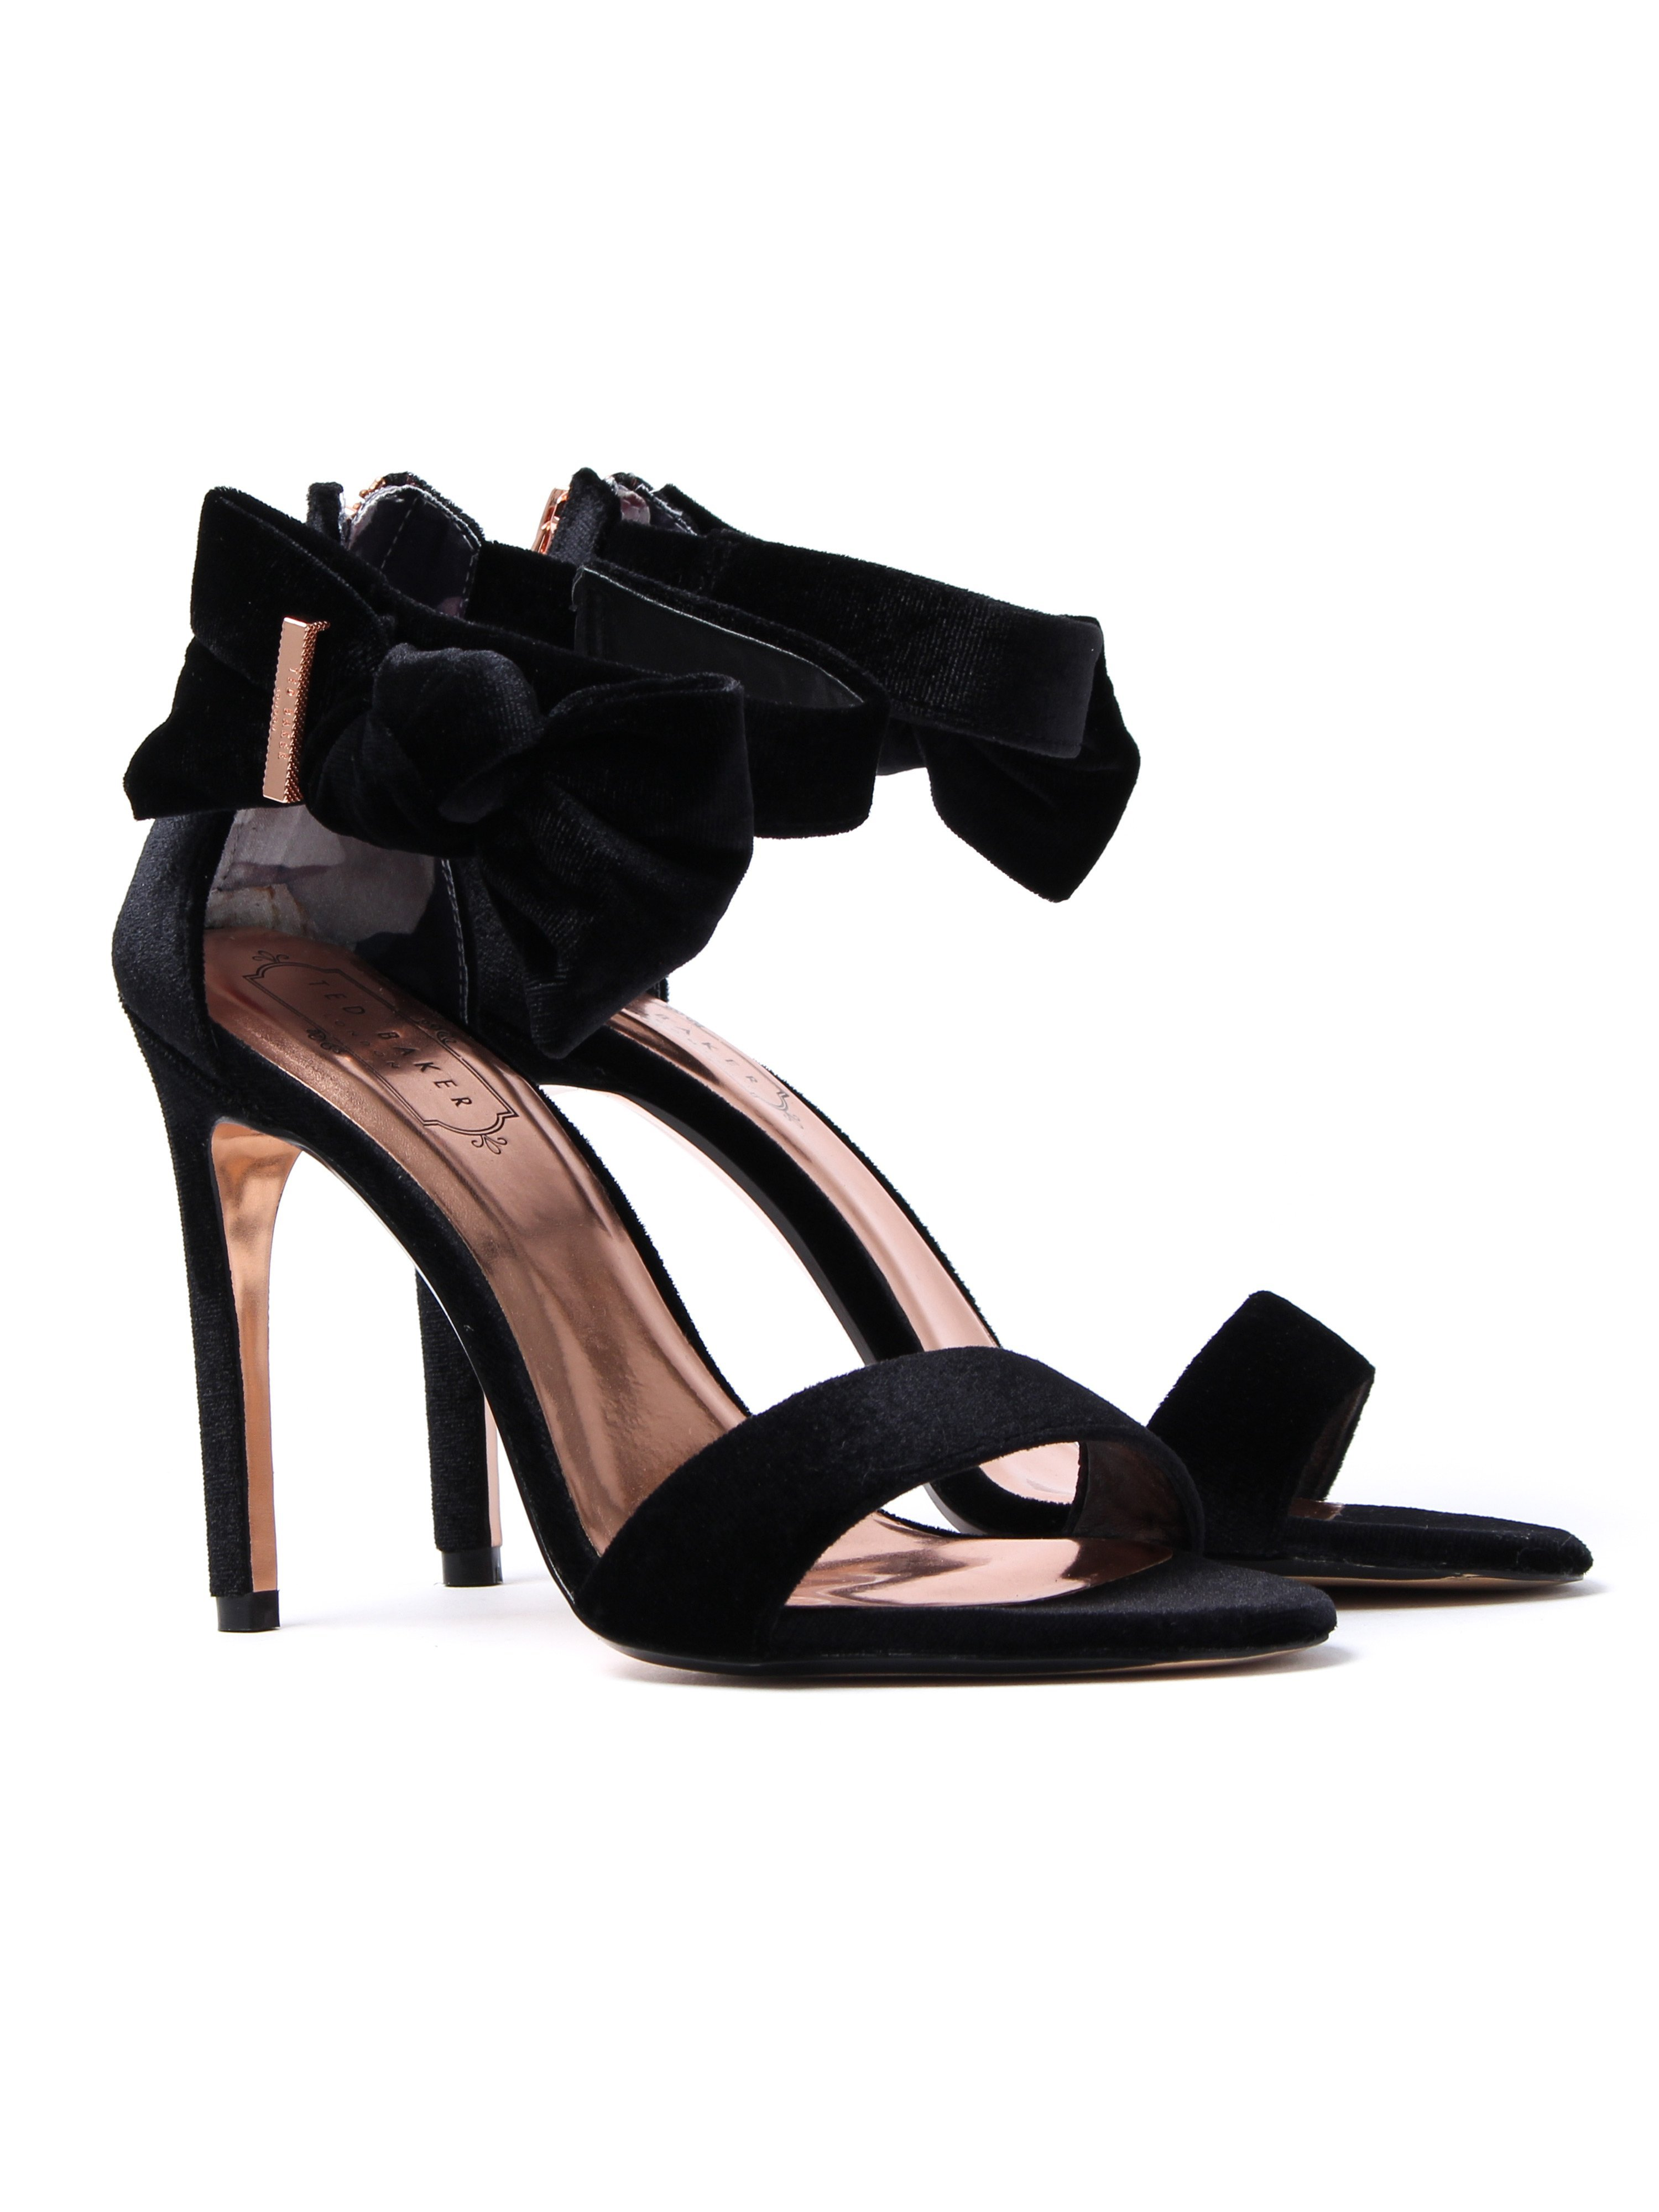 Ted Baker Women's Torabel Heeled Sandals - Black Velvet